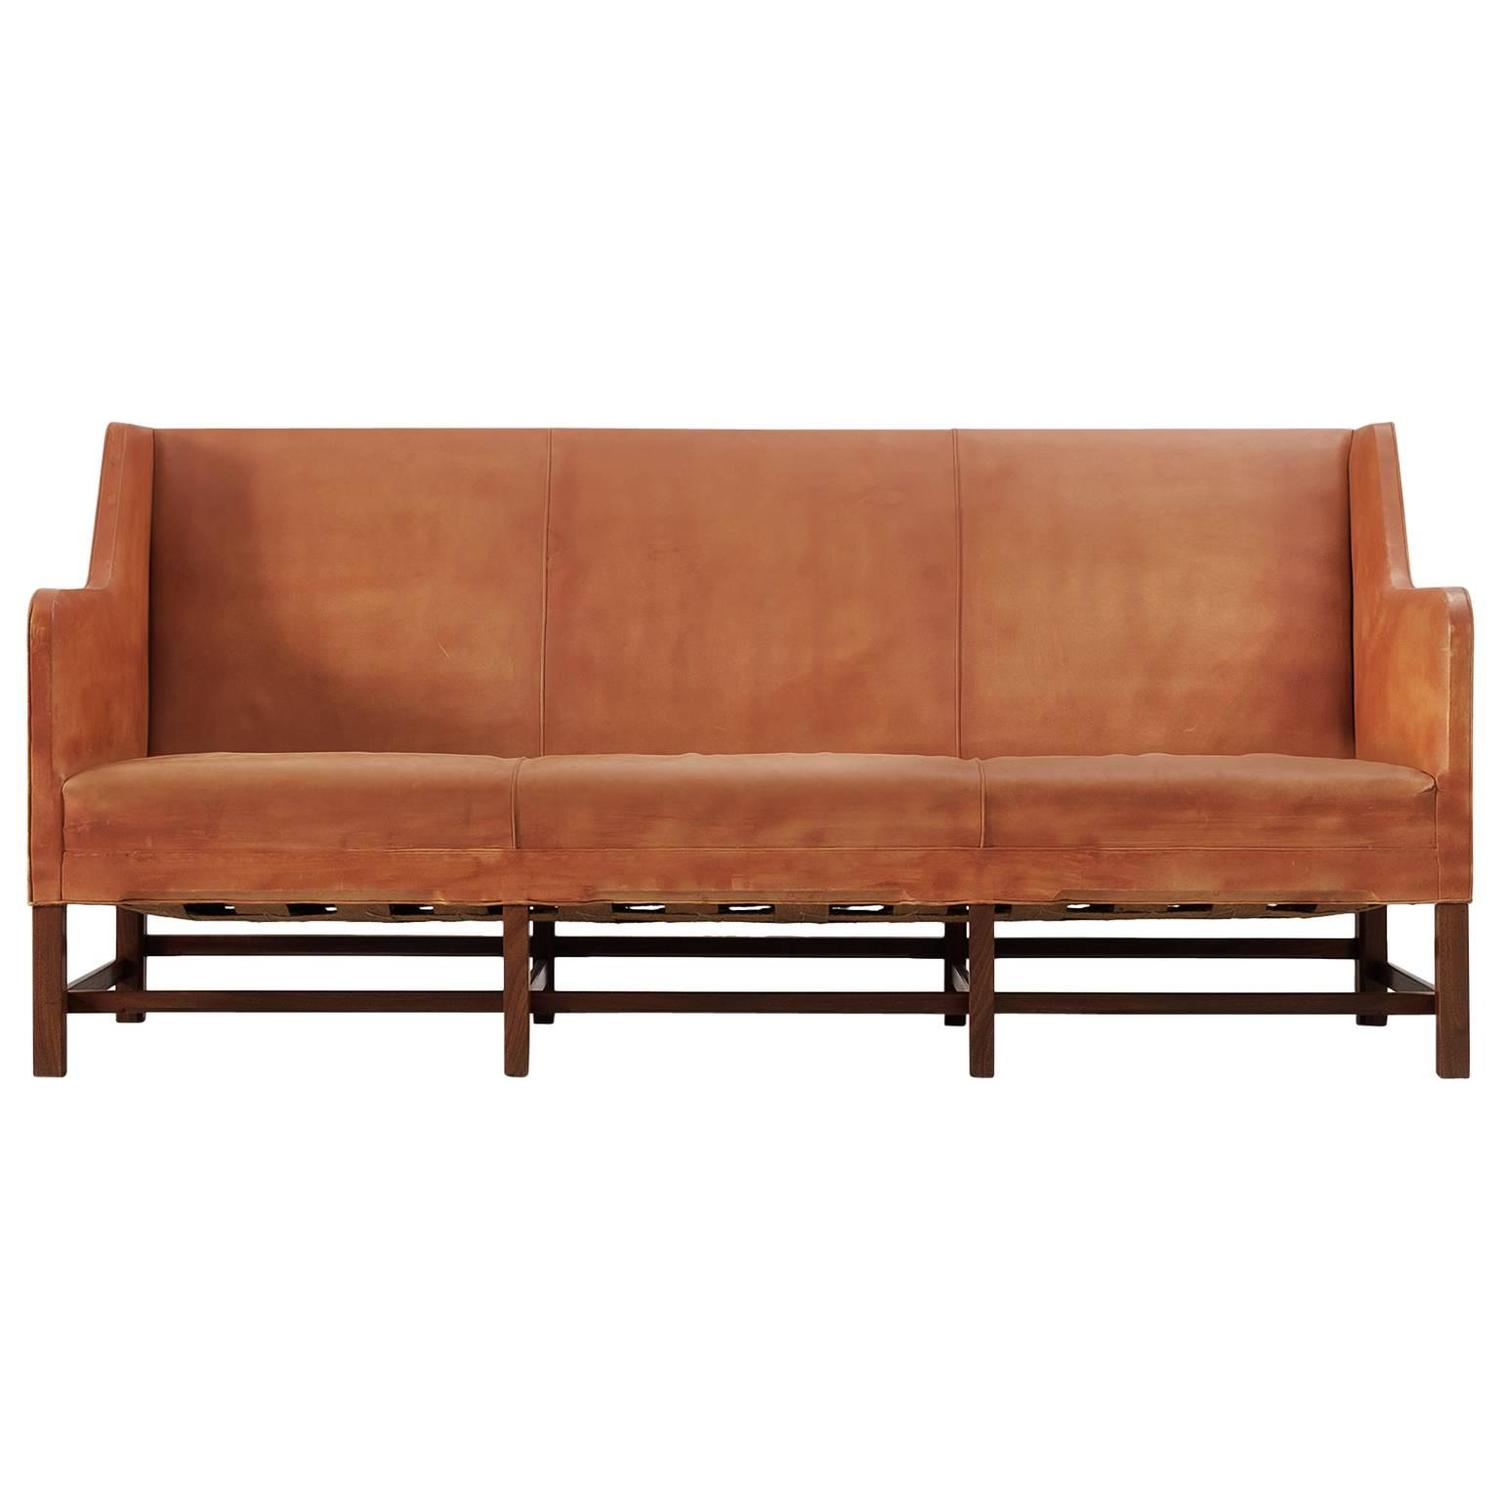 early kaare klint sofa in patinated cognac leather for rud rasmussen for sale at 1stdibs. Black Bedroom Furniture Sets. Home Design Ideas